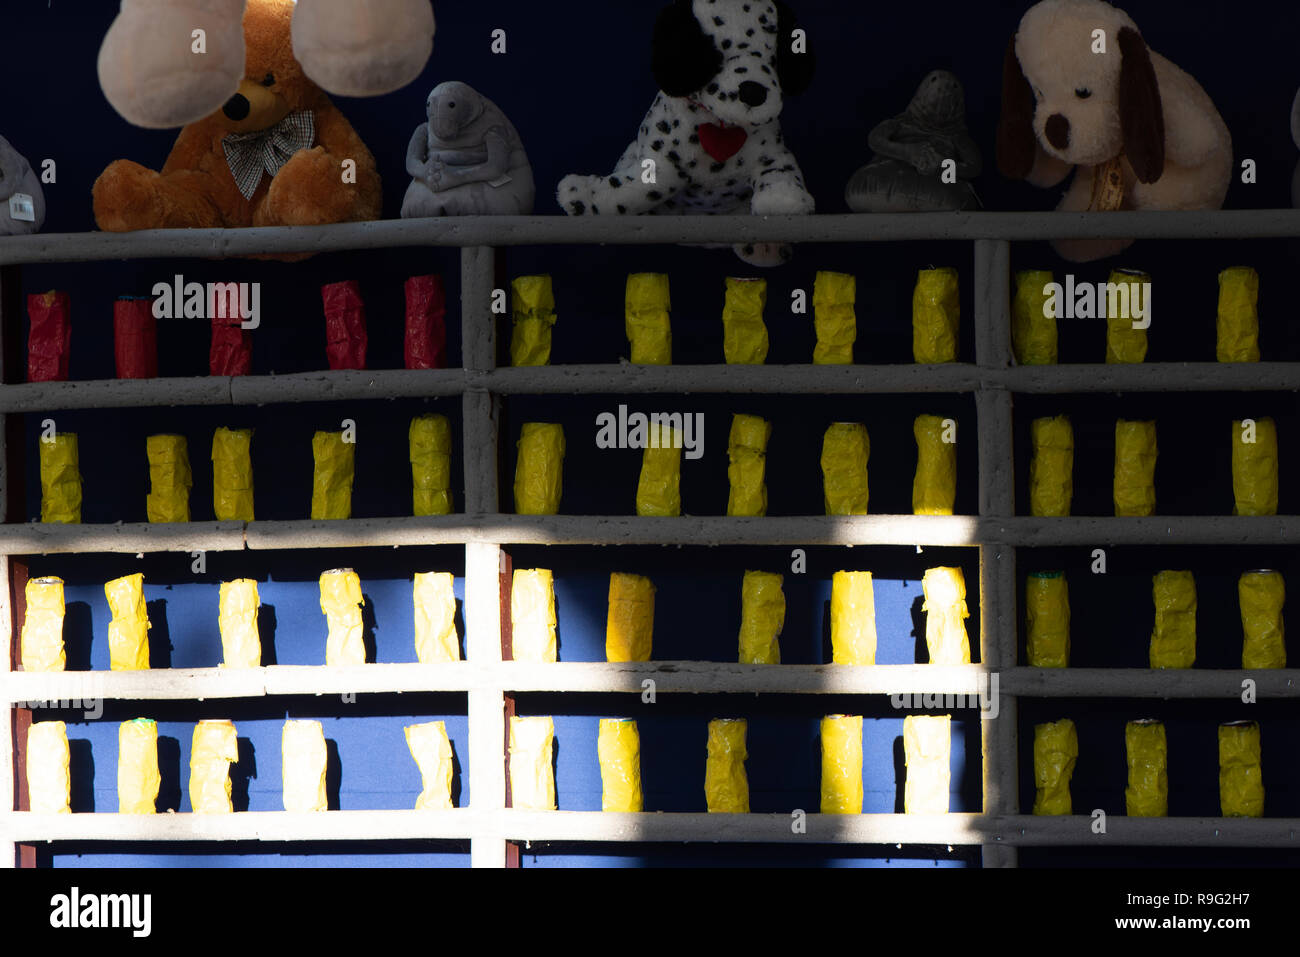 shooting gallery with yellow cans and prize toys - Stock Image